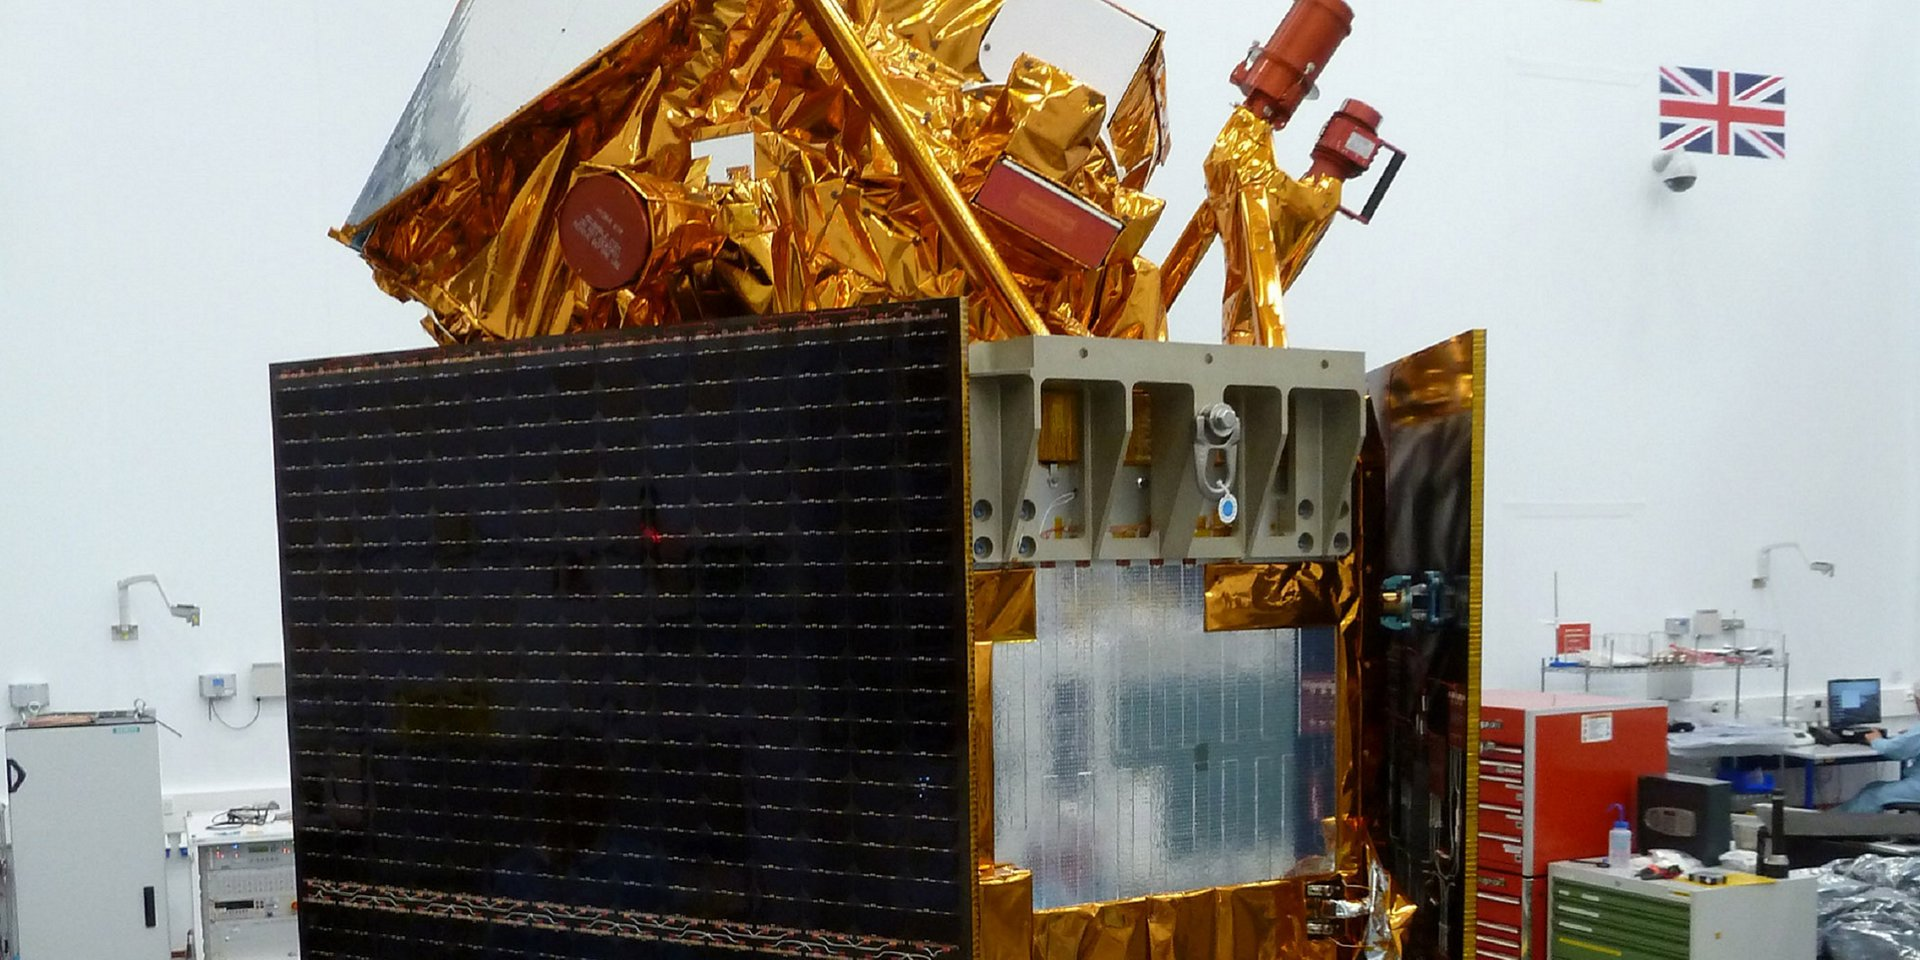 Airbus-built Sentinel-5P satellite in clean room, Stevenage